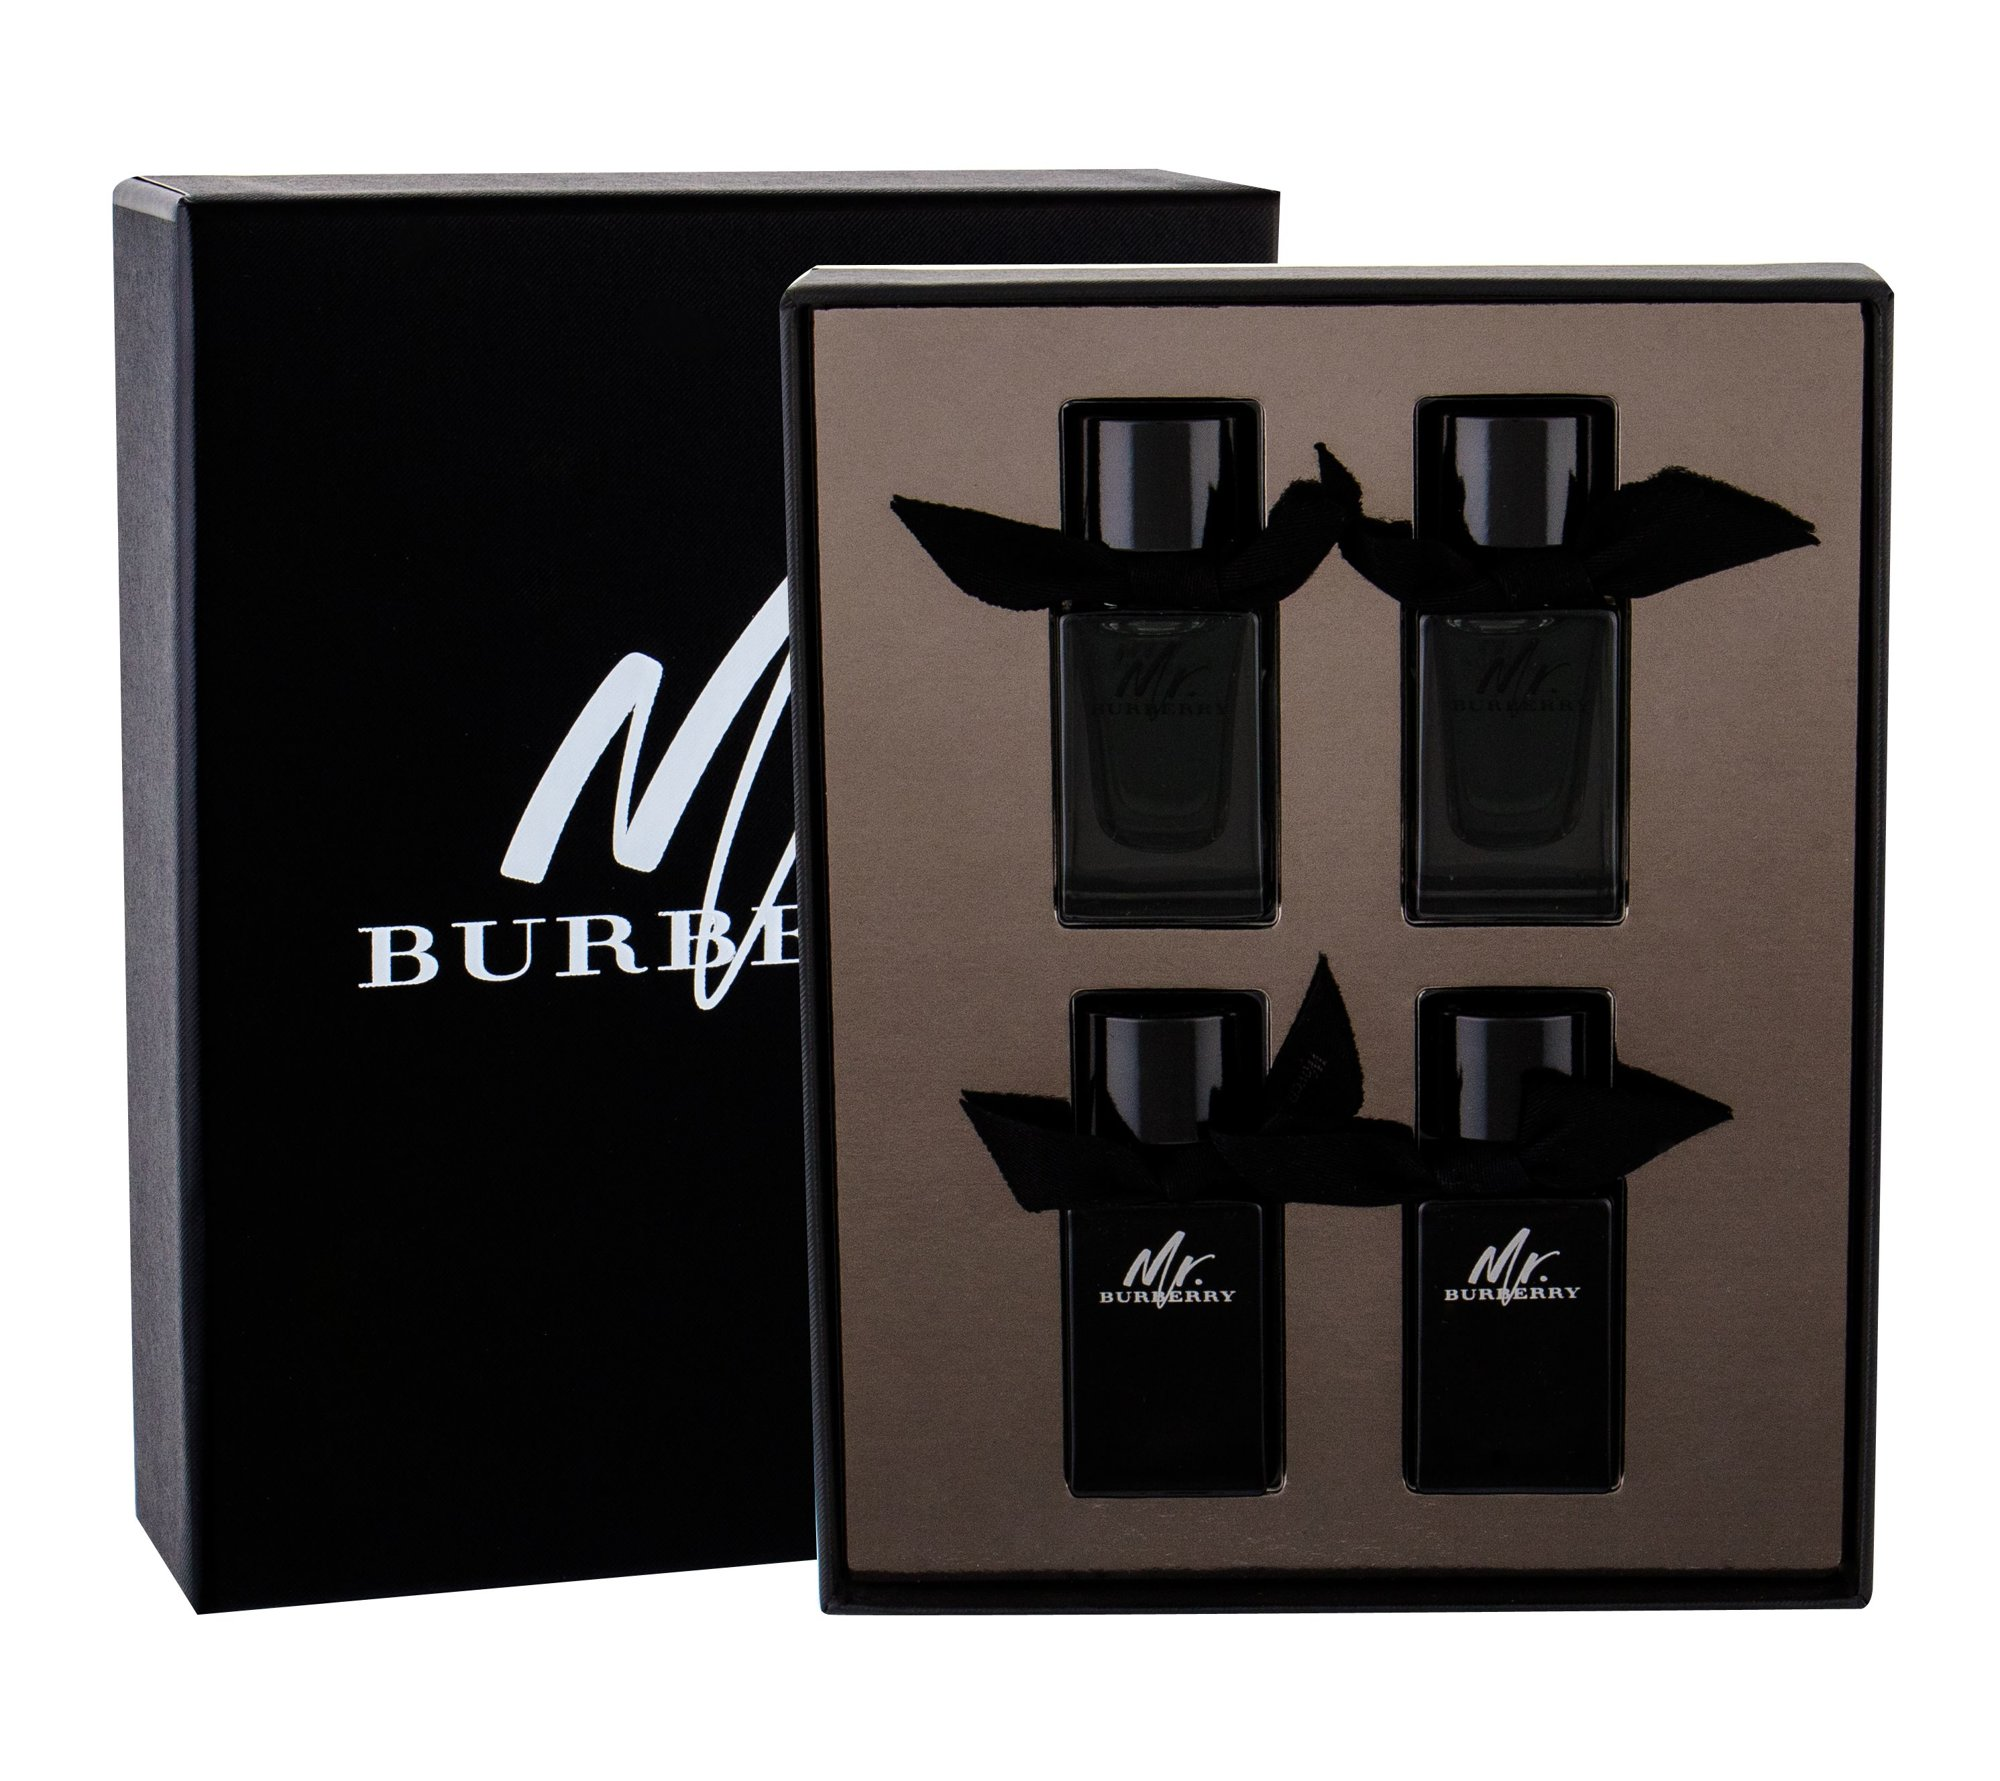 Burberry Mr. Burberry Eau de Parfum 4x5ml